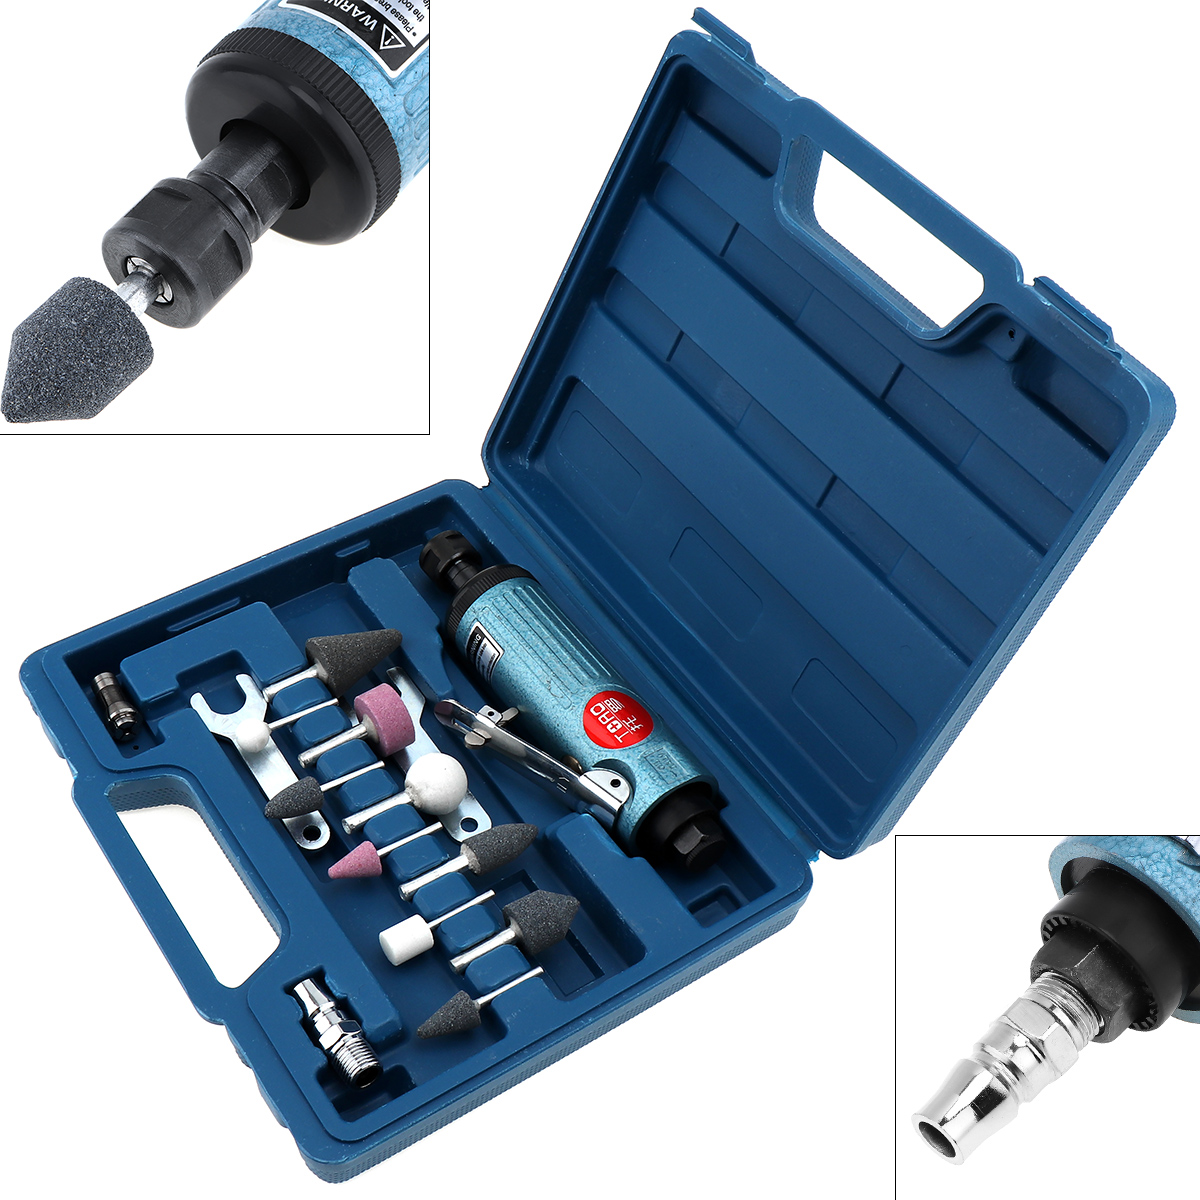 New TORO 1/4 Inch Large Pneumatic Grinding Machine Mold Air Compressor Die Grinder Tool with 14pcs Rotary Tool Kit